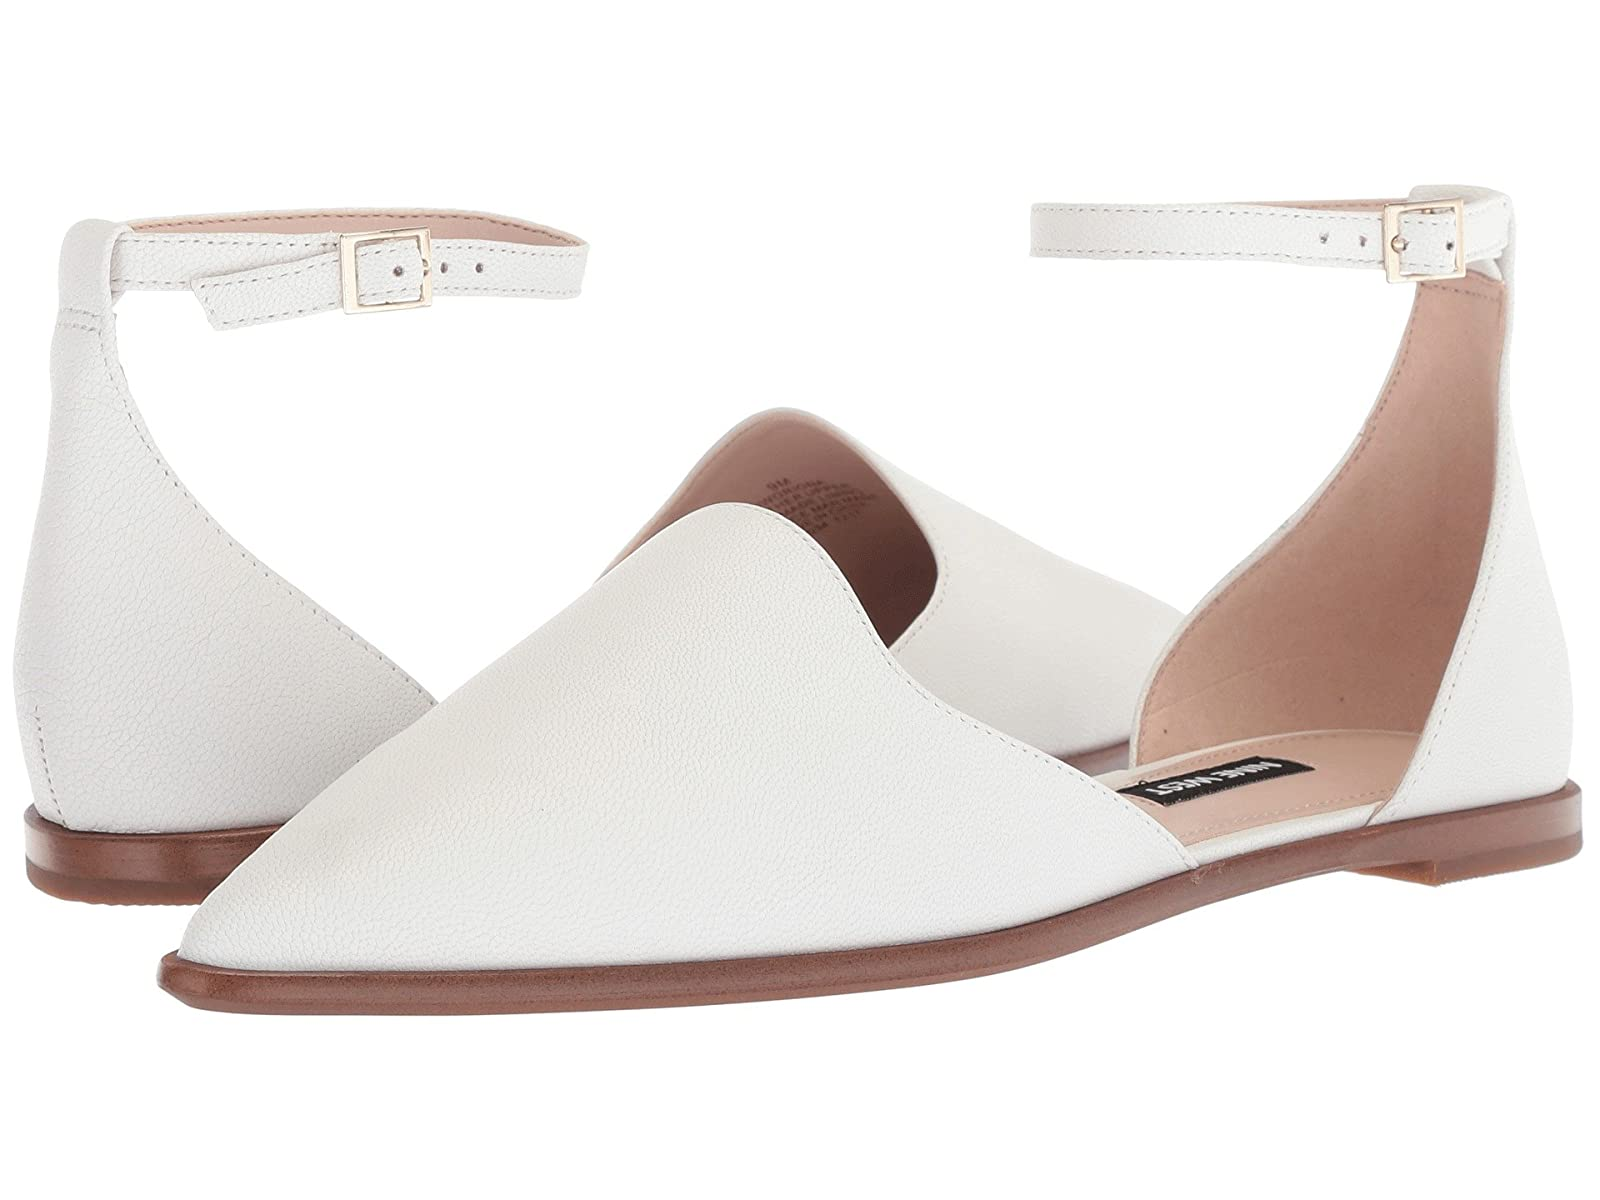 Nine West Oriona D'Orsay FlatCheap and distinctive eye-catching shoes